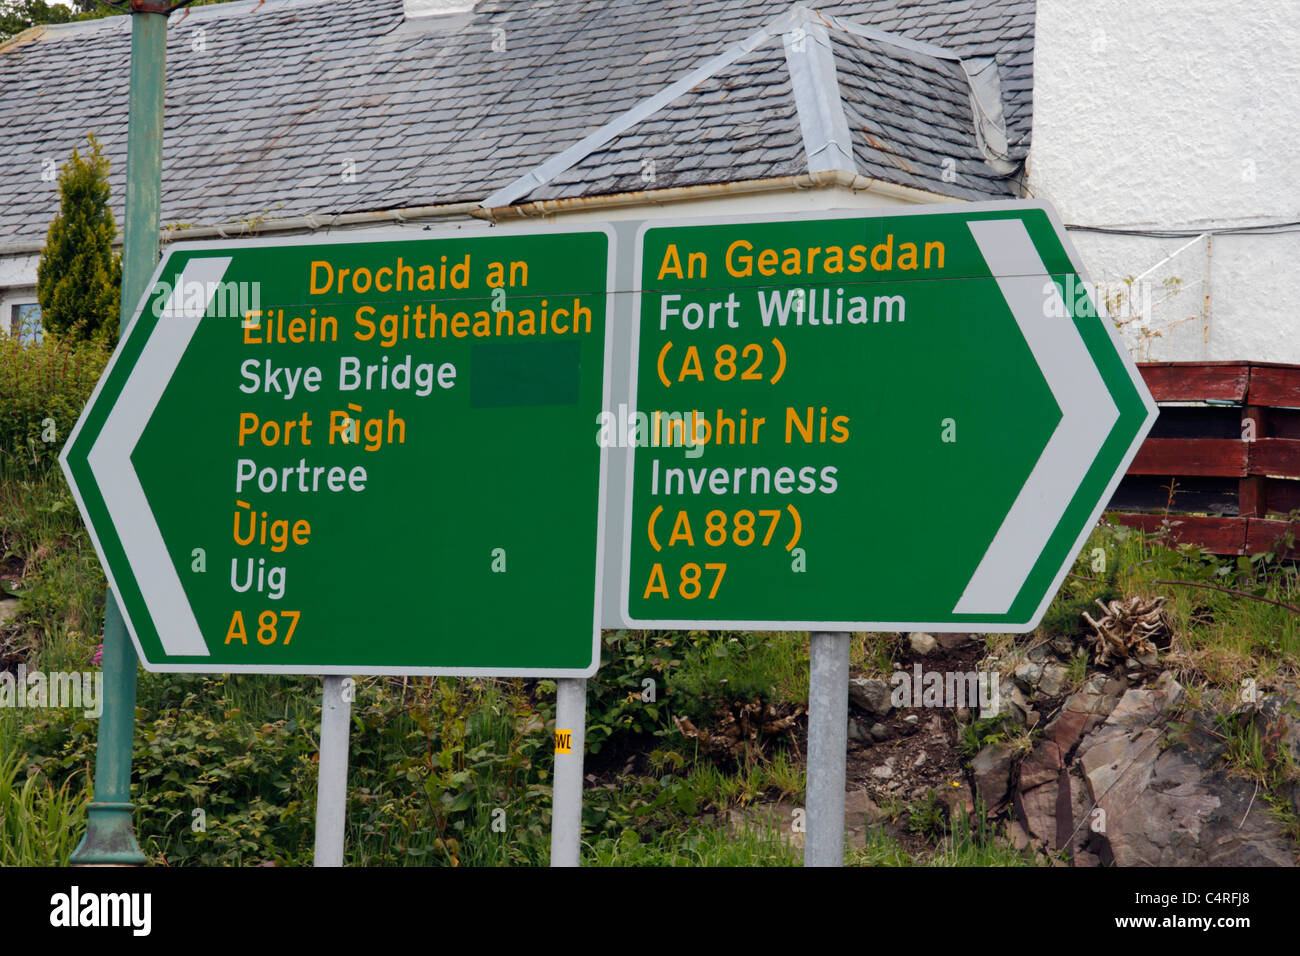 Dual language English and Gaelic road signs in Kyle of Lochalsh, Scotland - Stock Image